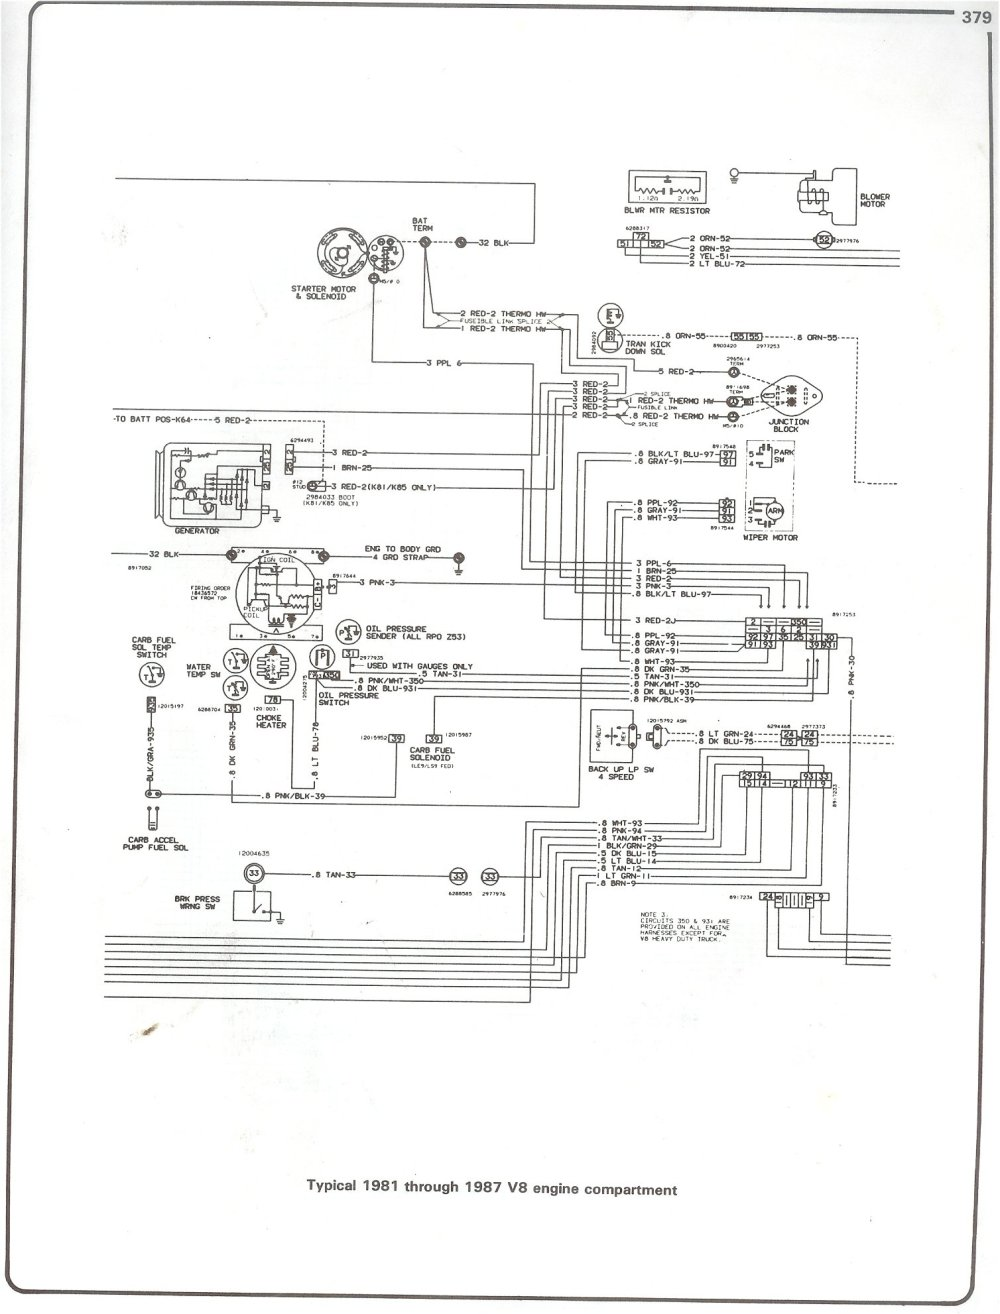 medium resolution of 1987 chevy wiring diagram another blog about wiring diagram u2022 rh ok2 infoservice ru